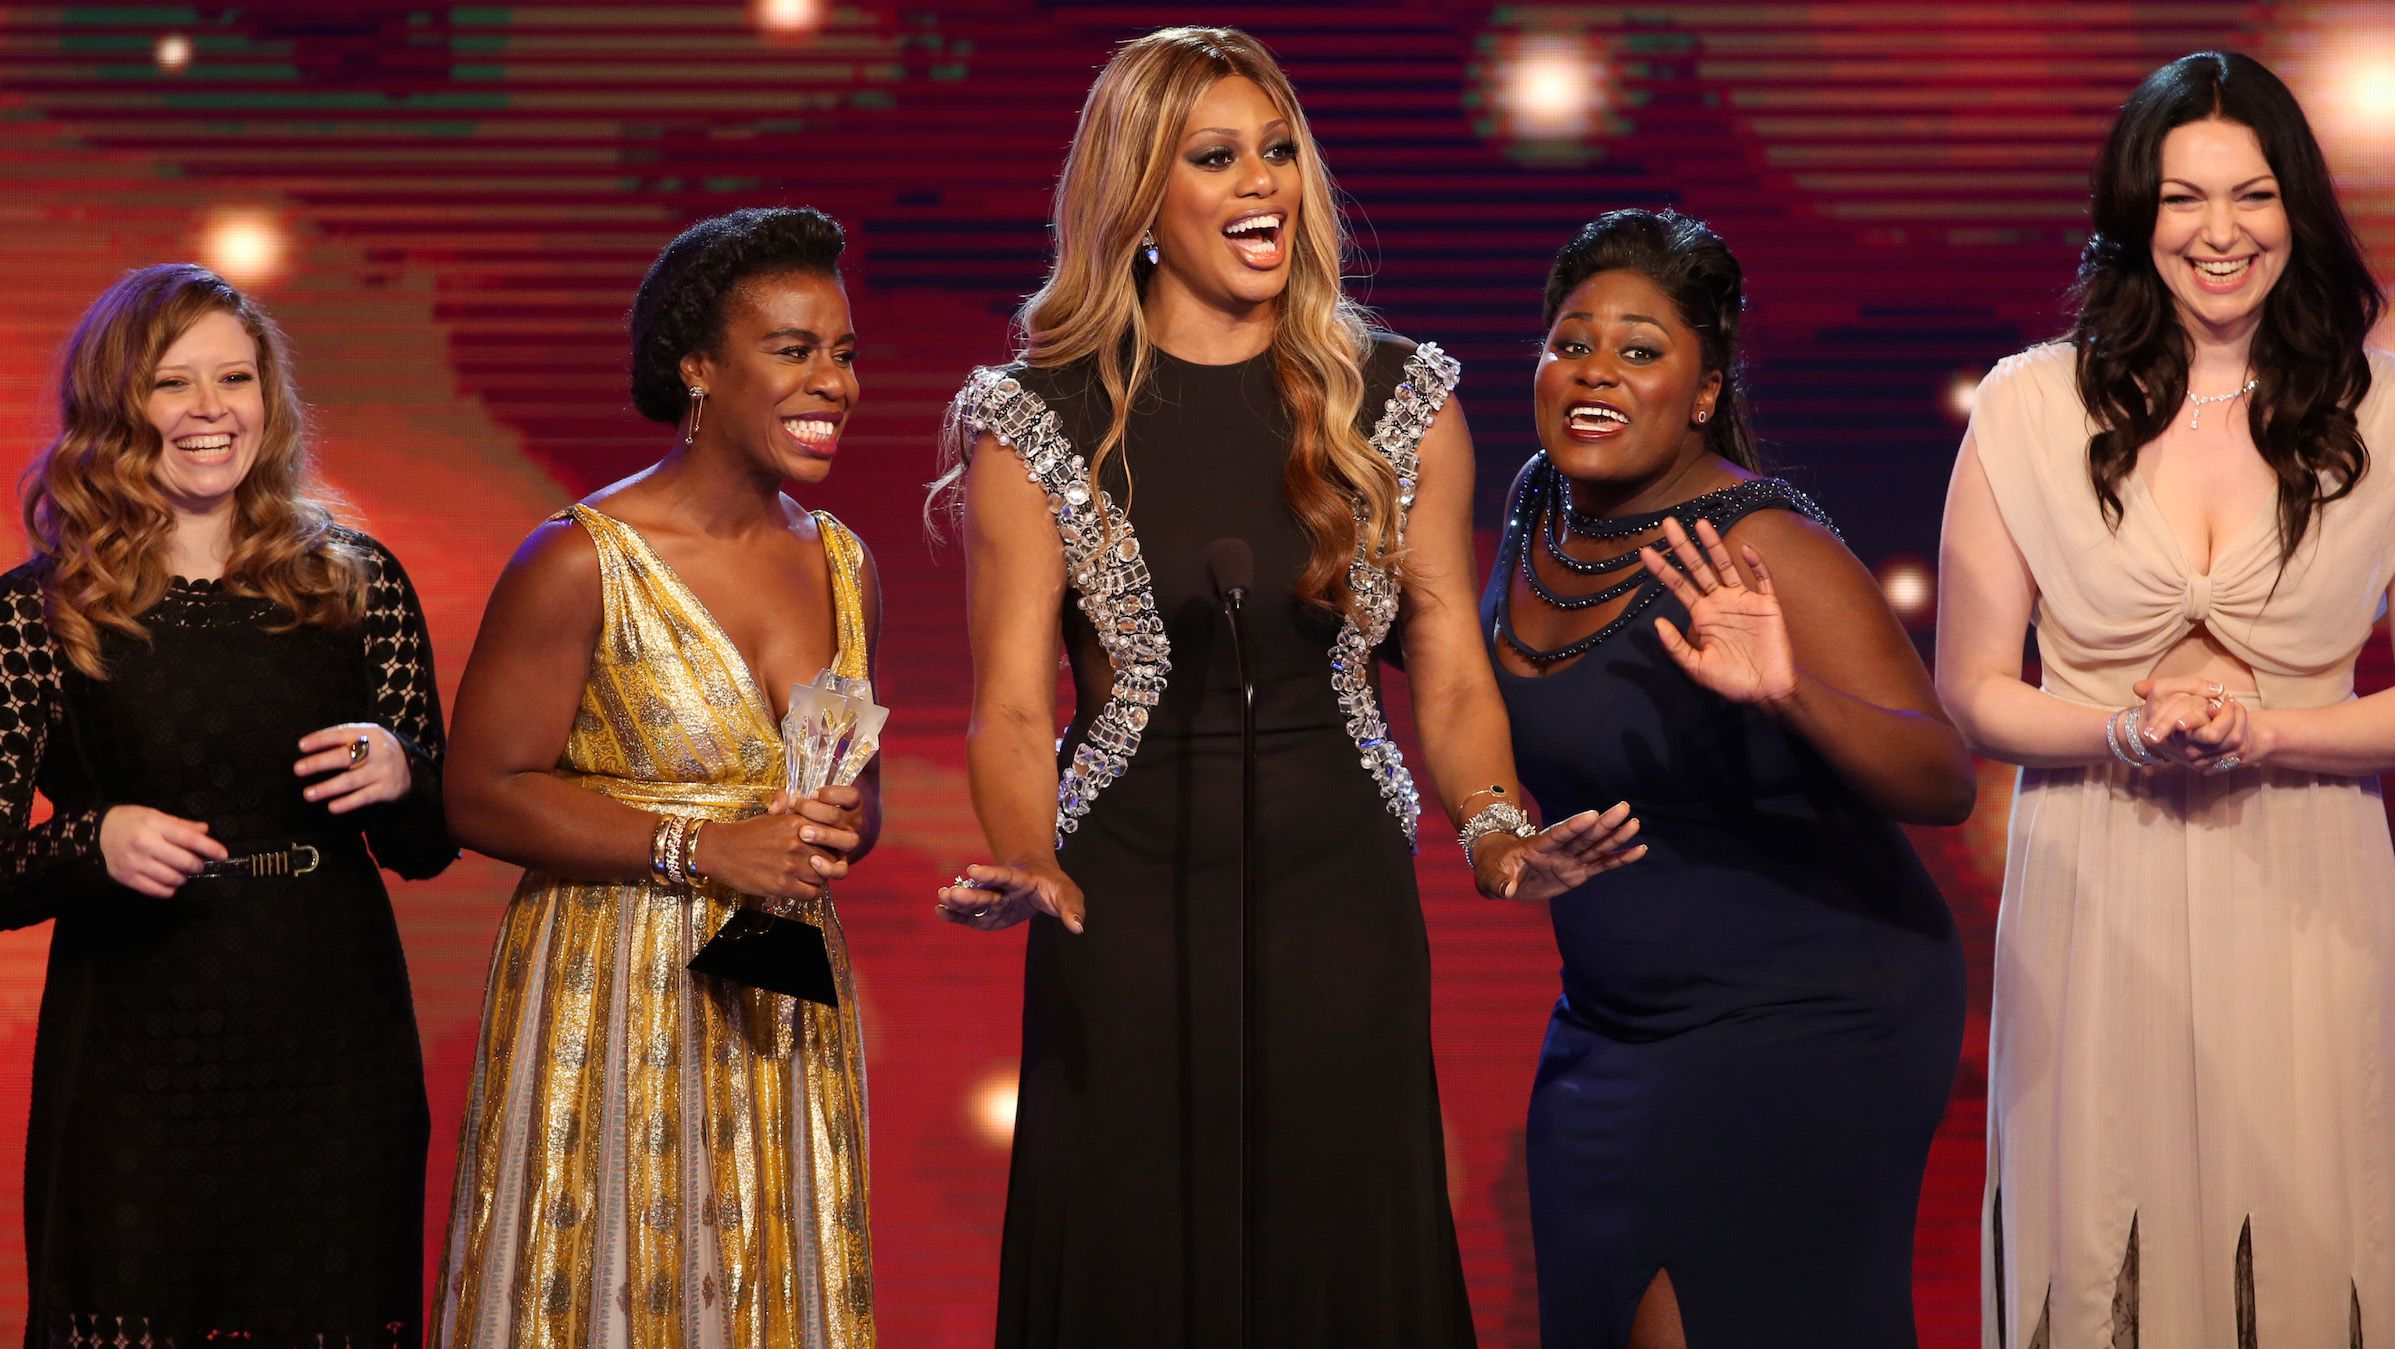 """From left, Natasha Lyonne, Uzo Aduba, Laverne Cox, Danielle Brooks, and Laura Prepon accept the award for best comedy series for """"Orange is the New Black"""" at the Critics' Choice Television Awards at the Beverly Hilton Hotel on Thursday, June 19, 2014, in Beverly Hills, Calif. (Photo by Paul A. Hebert/Invision/AP)"""